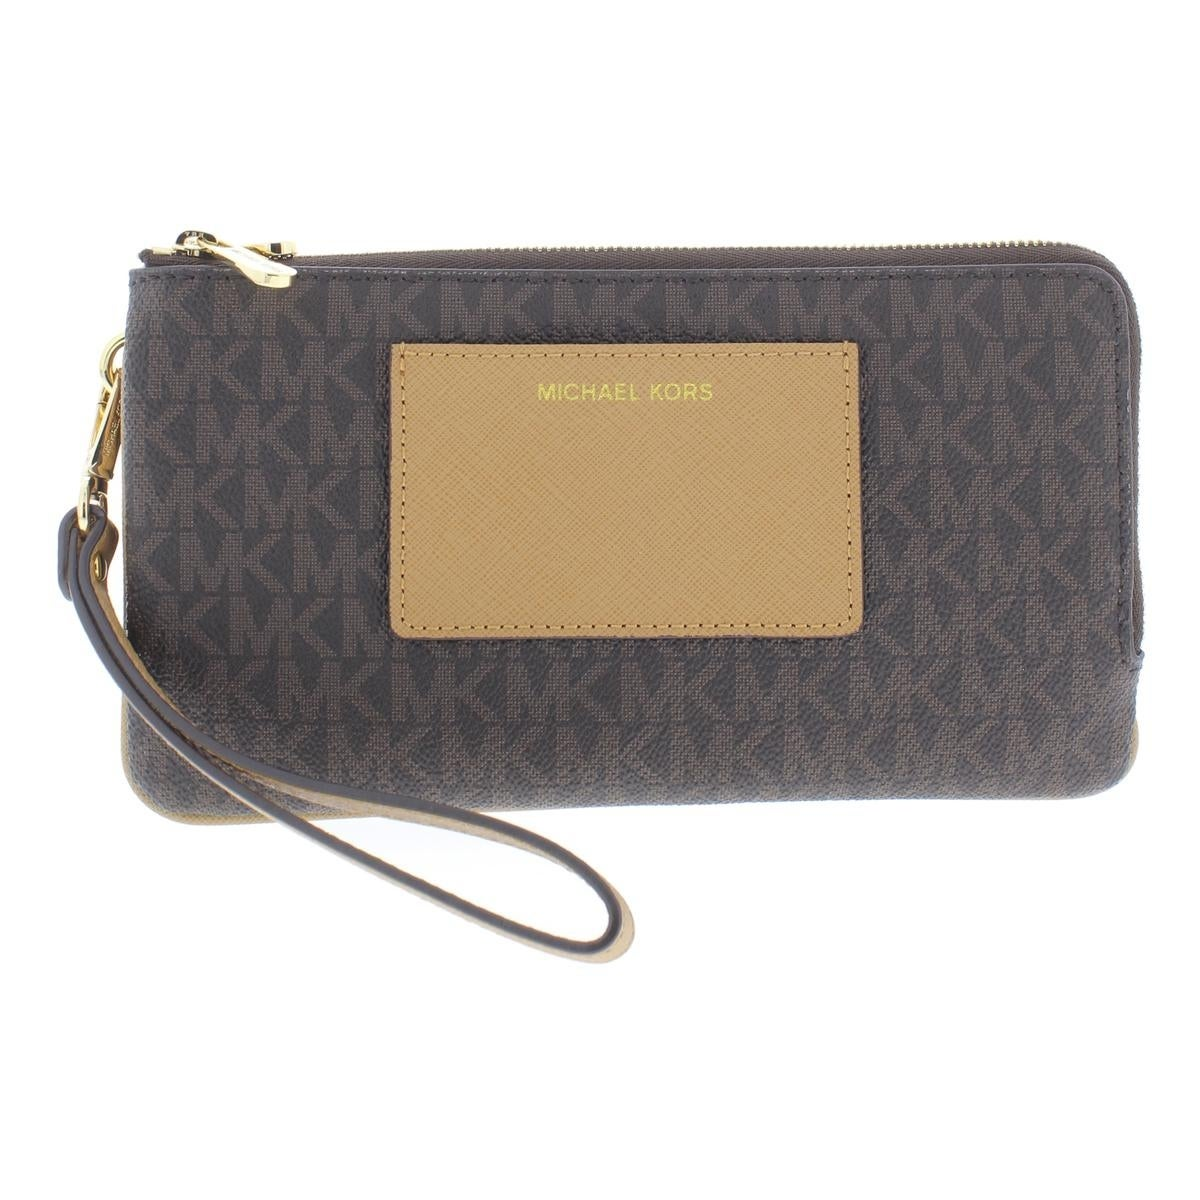 974f1844676b Shop MICHAEL Michael Kors Womens Bedford Wristlet Wallet Faux Leather Pouch  - LARGE - Free Shipping Today - Overstock - 25683358